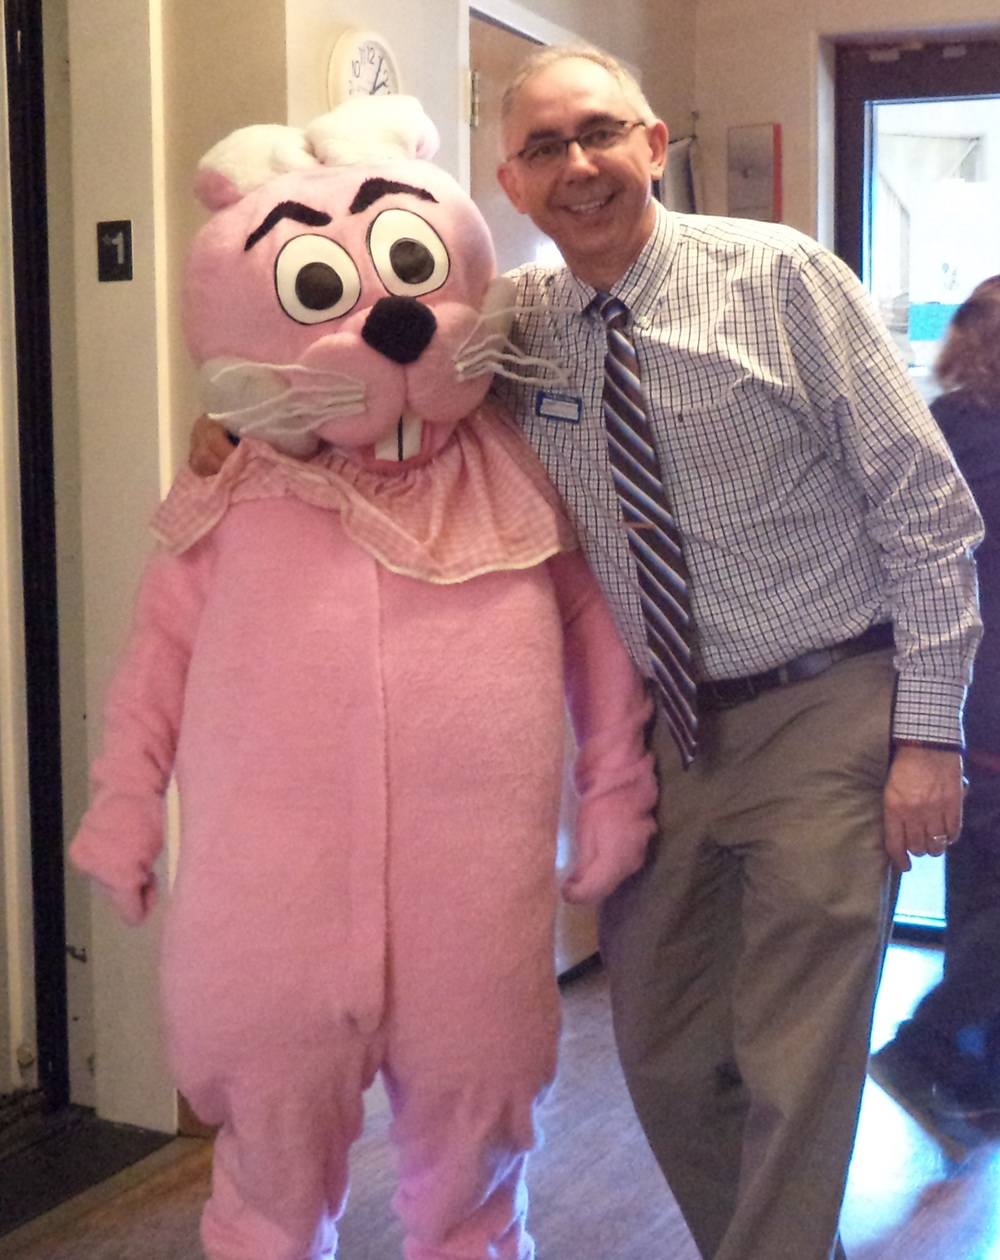 New Administrator Jimmy Grimes ushered in the Easter Bunny.